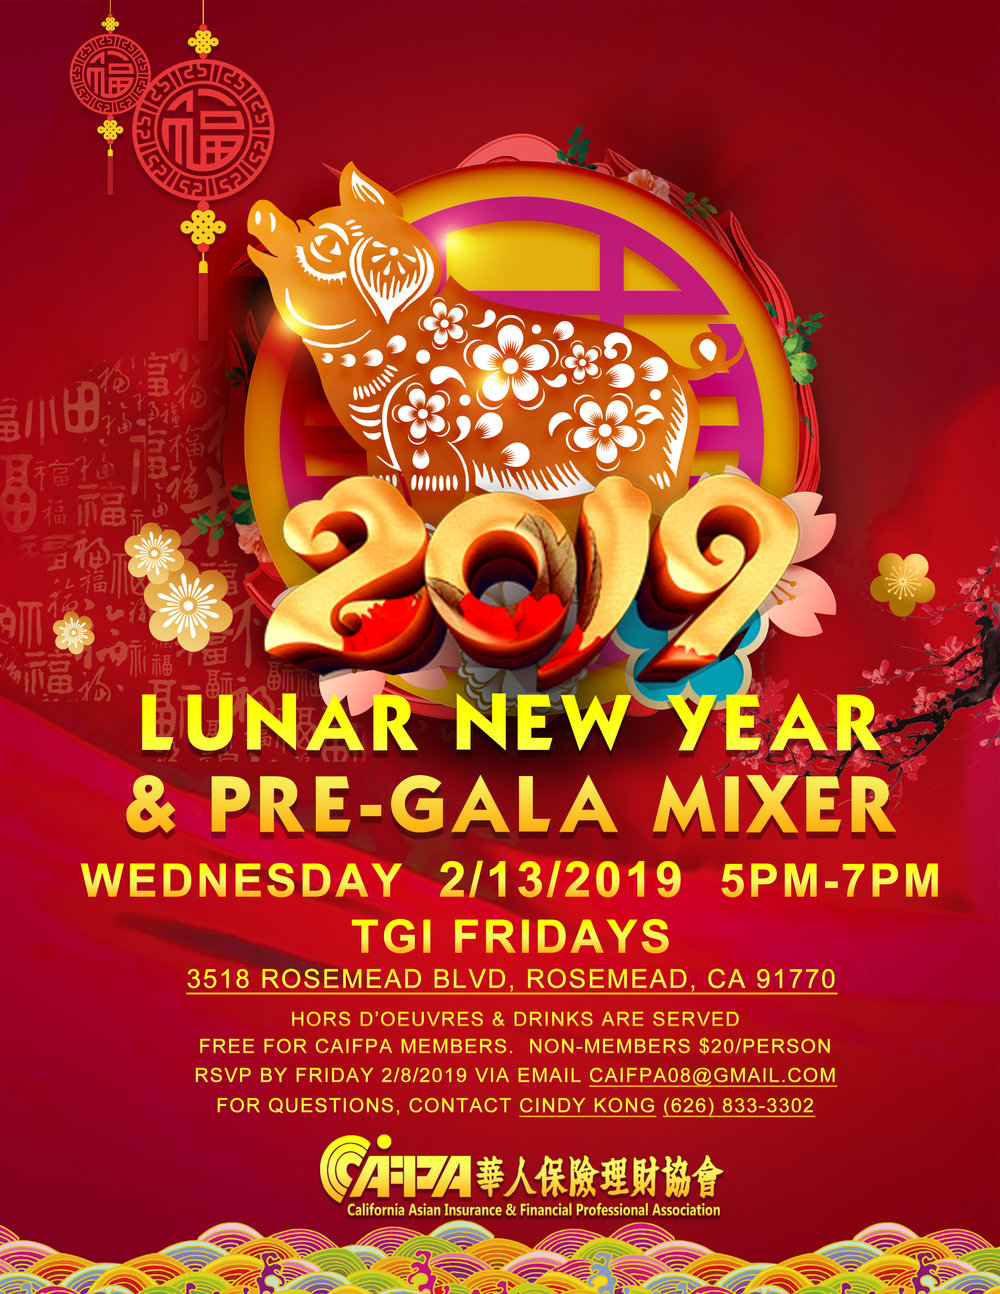 CAIFPA Lunar new year & pre-gala mixer - February 13th, 2019